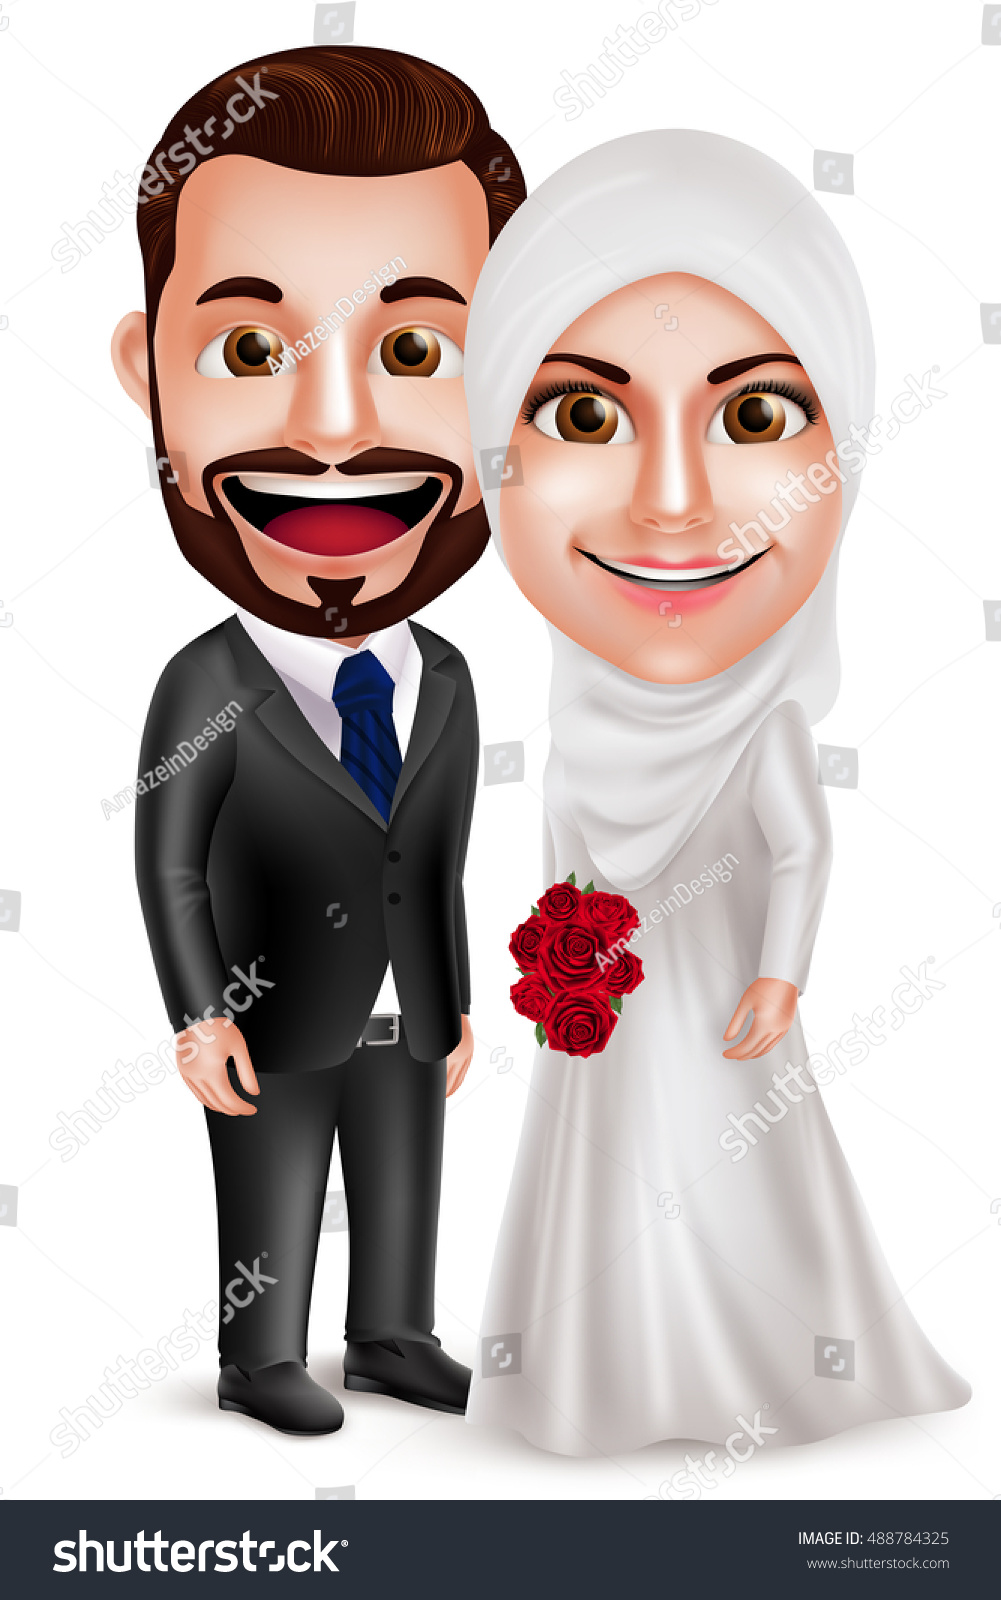 Muslim couple vector characters as bride and groom wearing white wedding dress holding bouquet standing side by side isolated in white background Vector illustration